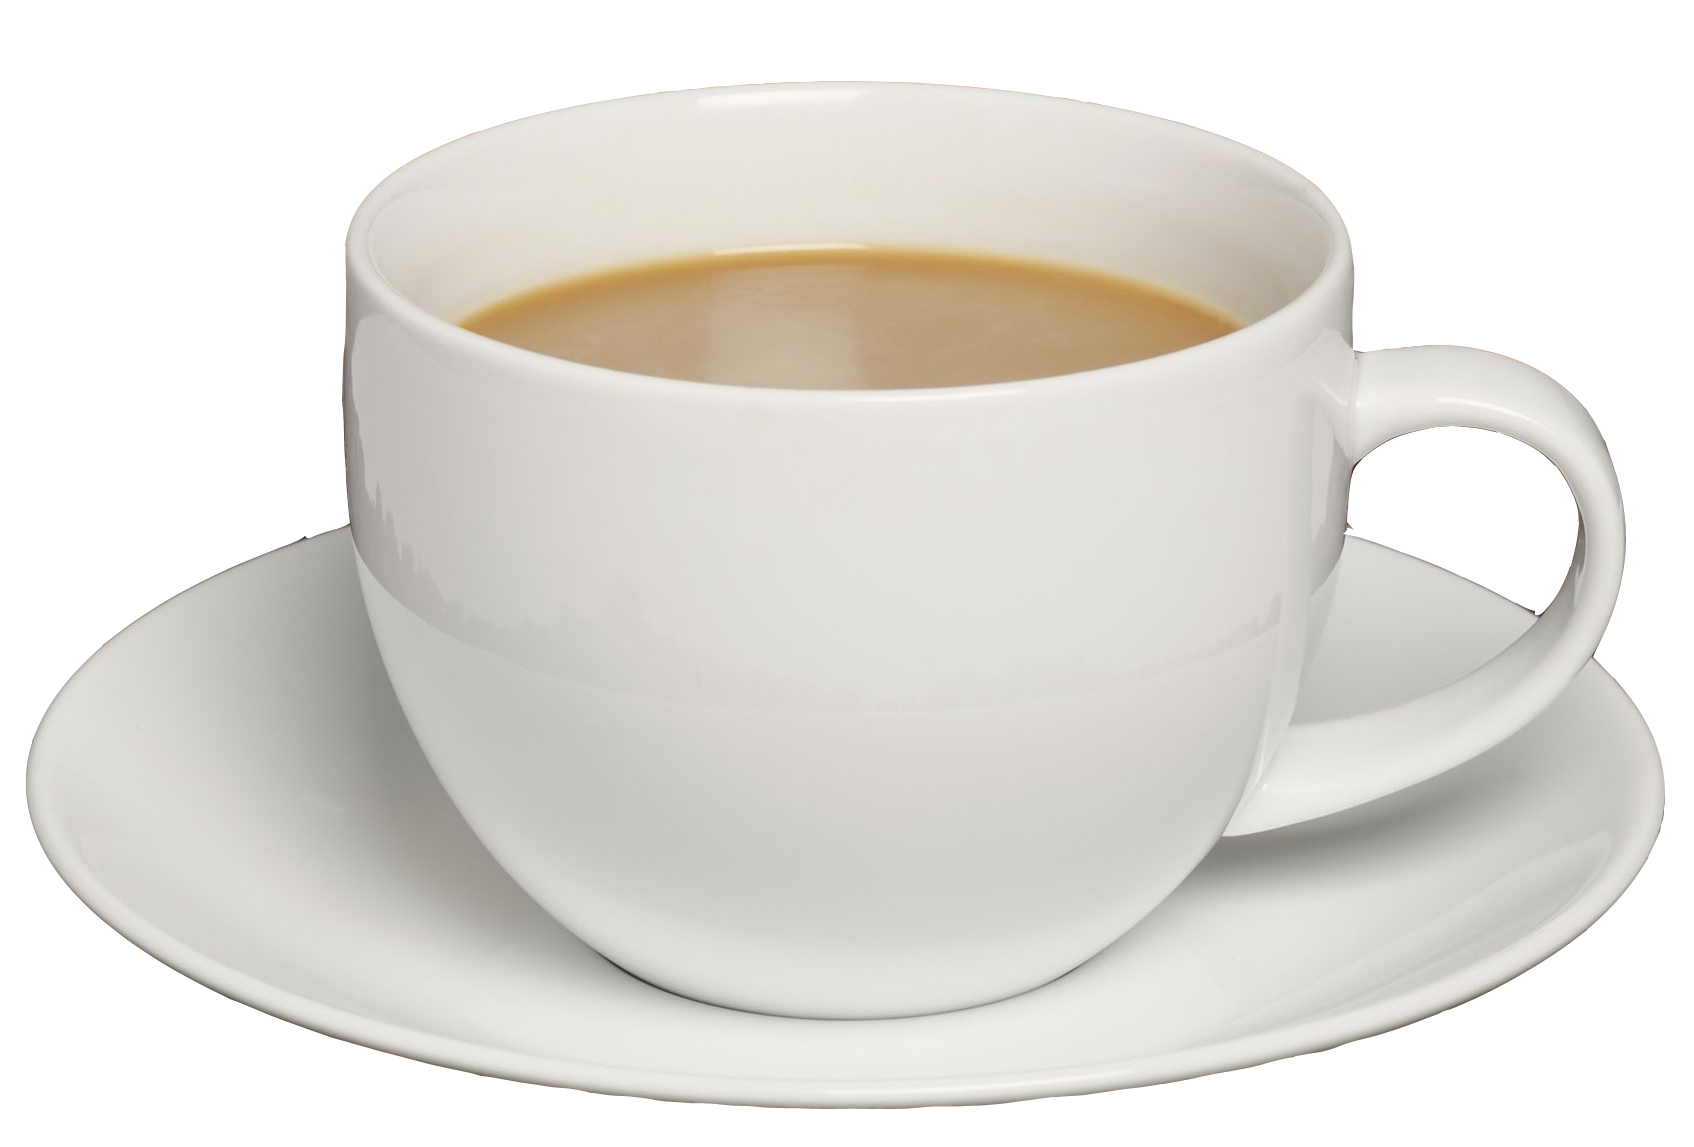 Hot Tea Cup Png, png collections at sccpre.cat.